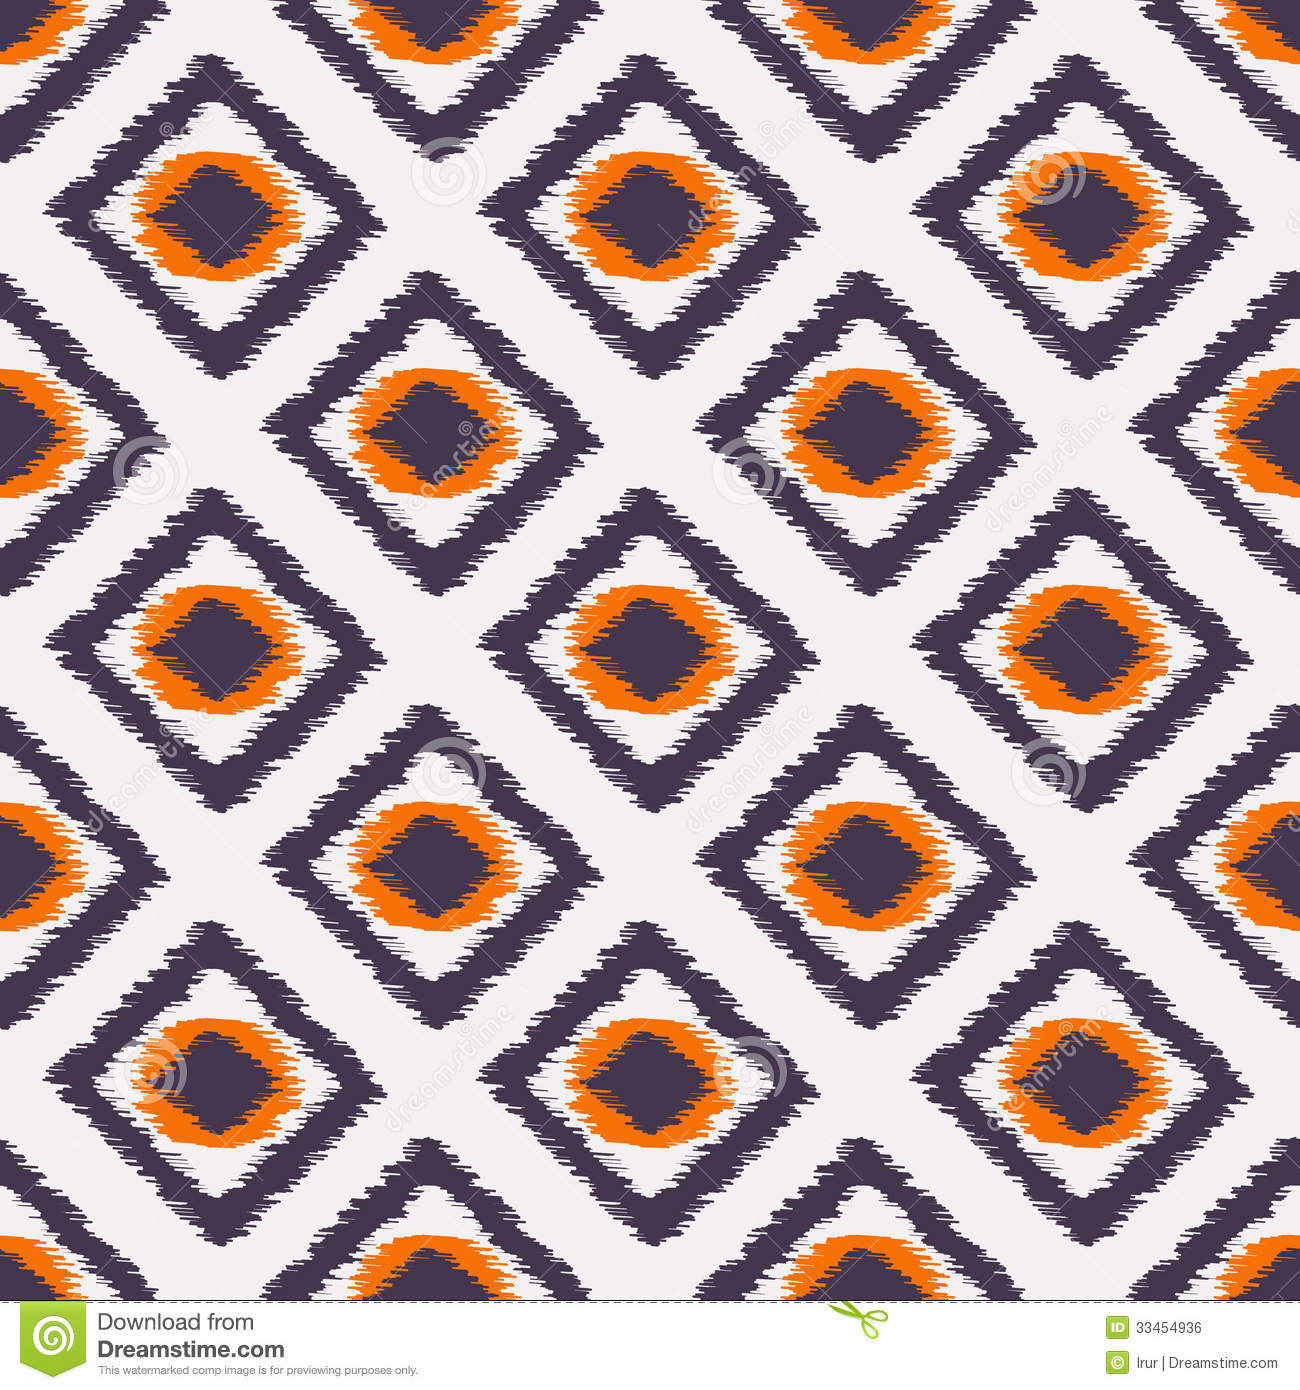 Ikat Seamless Pattern For Web Design Or Home Decor Stock